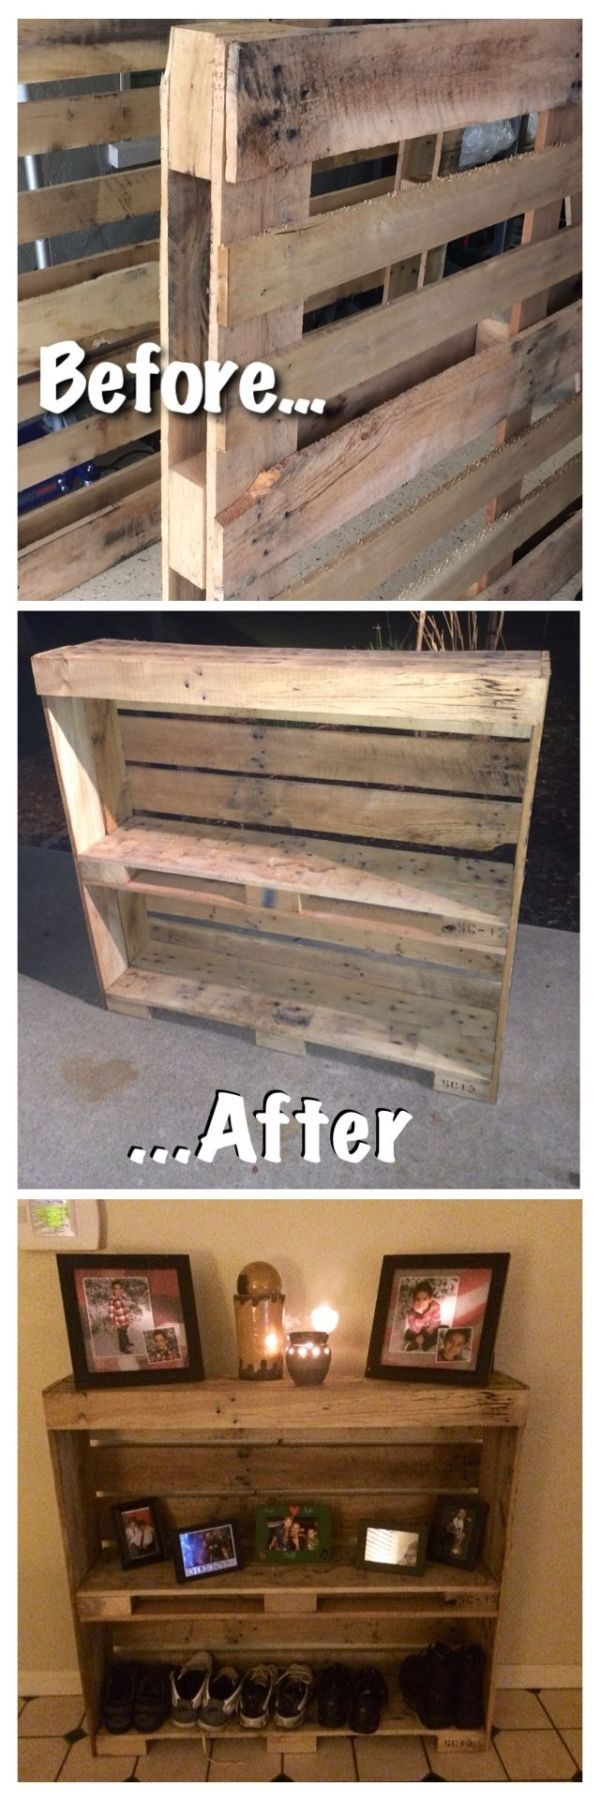 25 best ideas about wooden pallet projects on pinterest wood pallets pallet ideas and wooden - Diy projects with wooden palletsideas easy to carry out ...